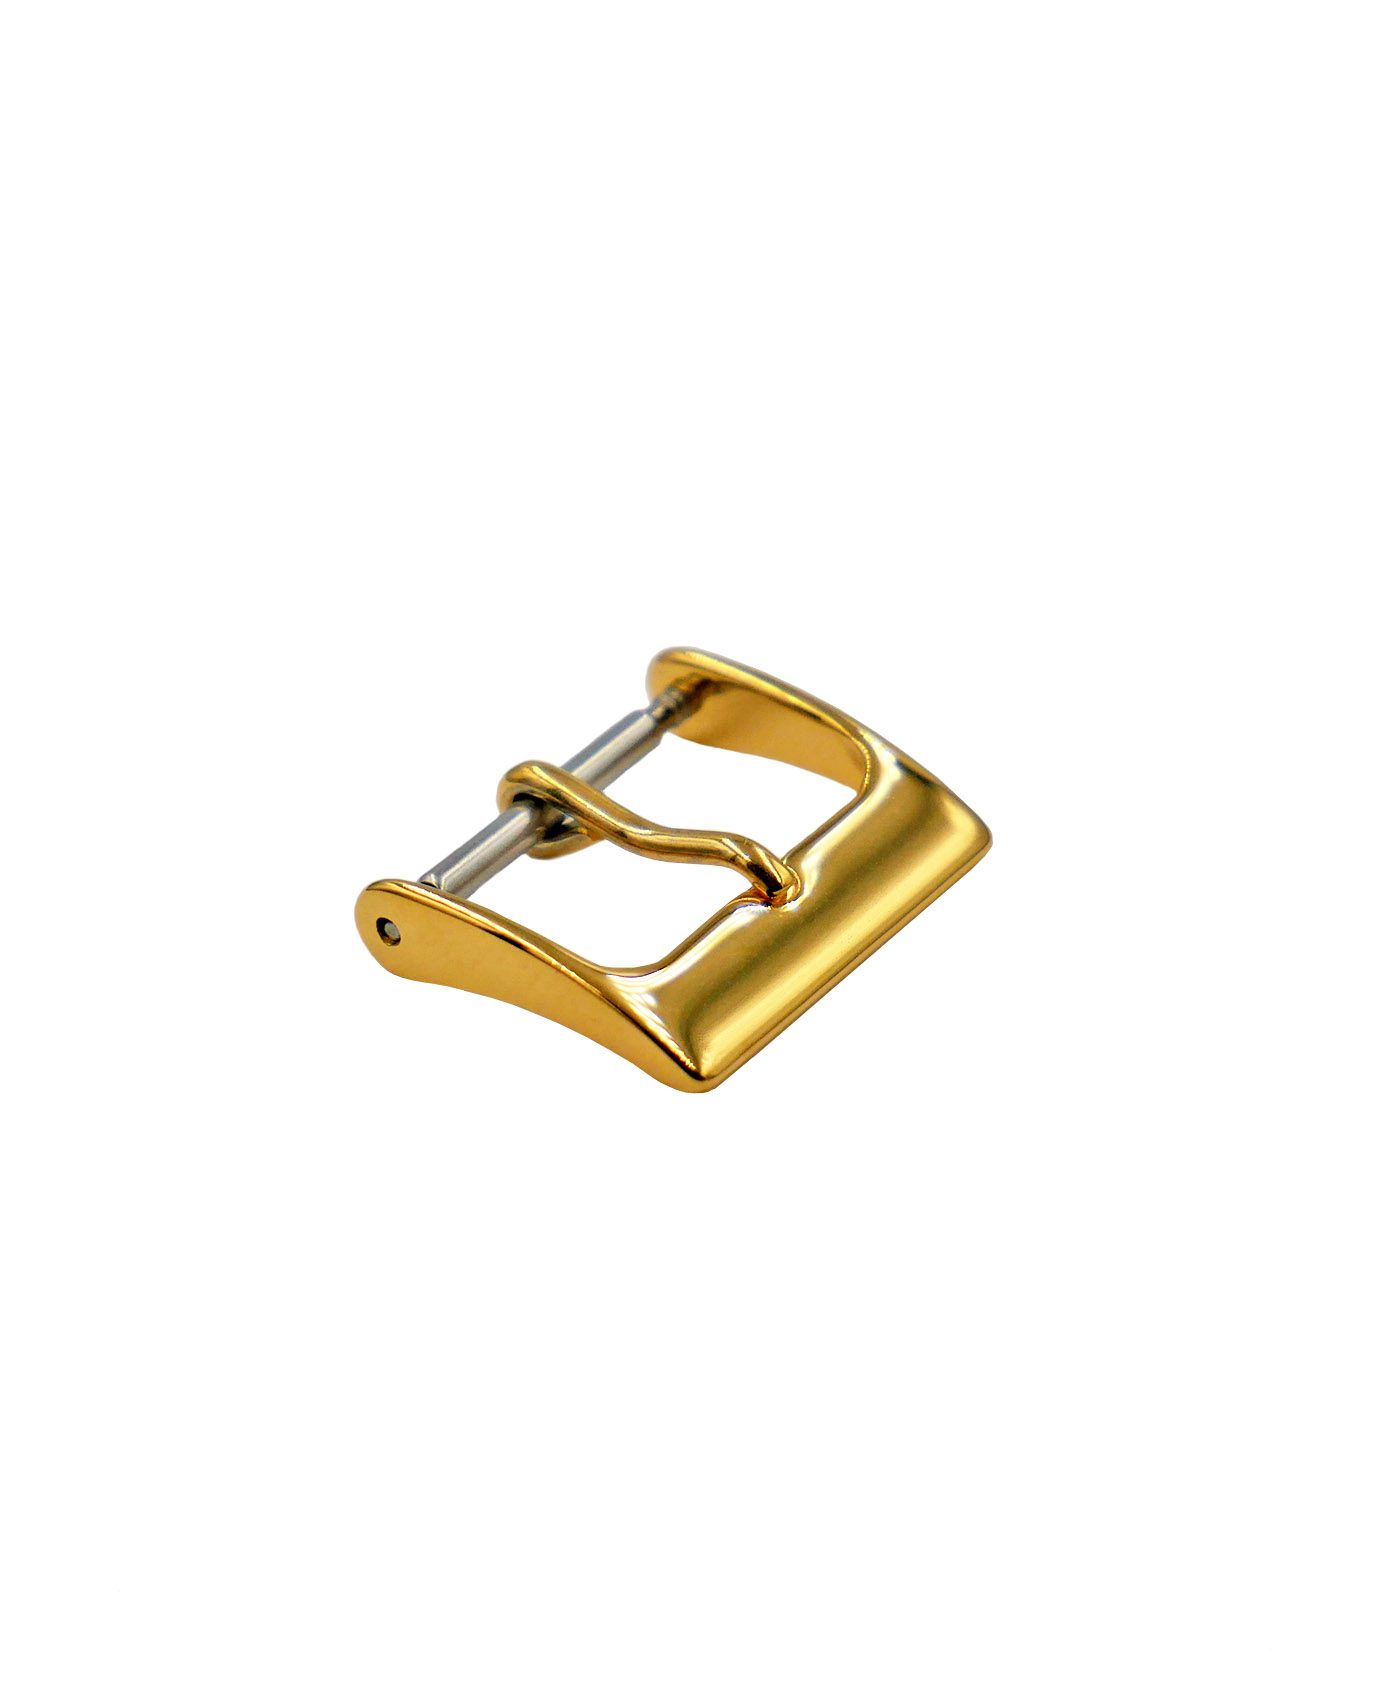 Watchbandit golden buckle for watch straps